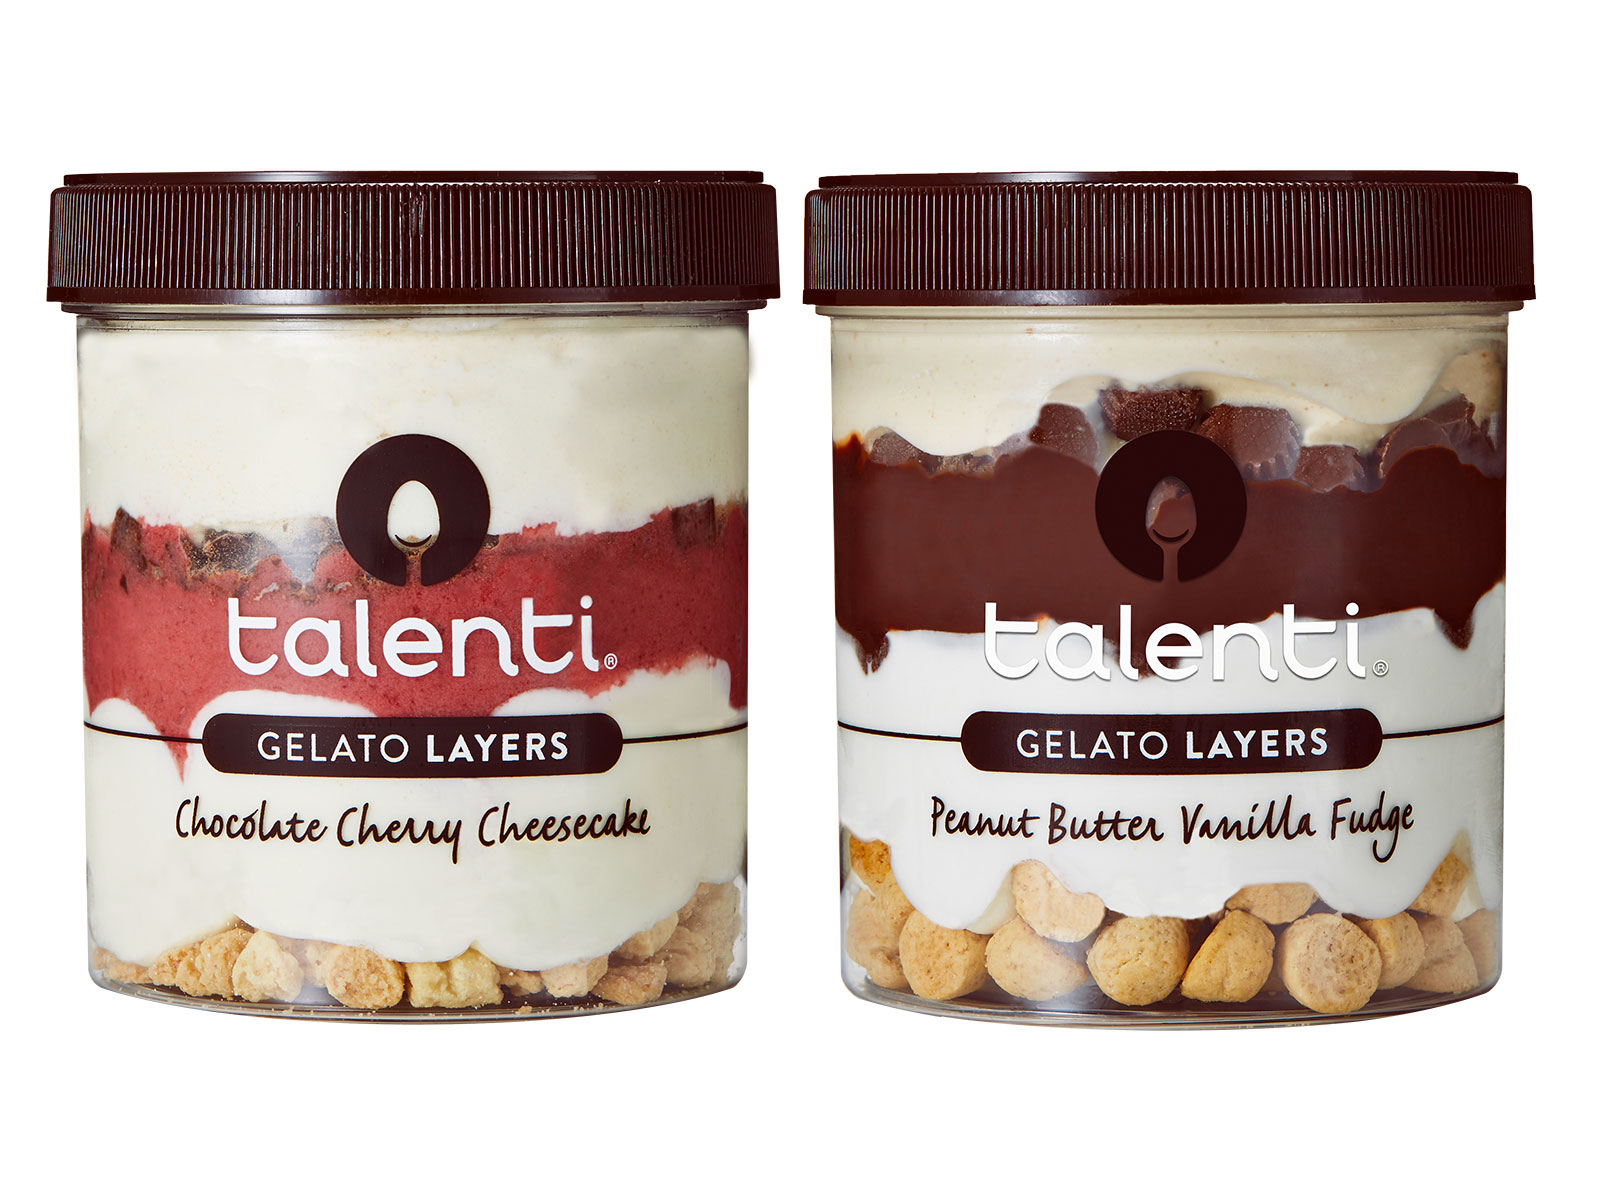 I Tried Talenti's New Gelato Layers, and It's Late-Night Gold